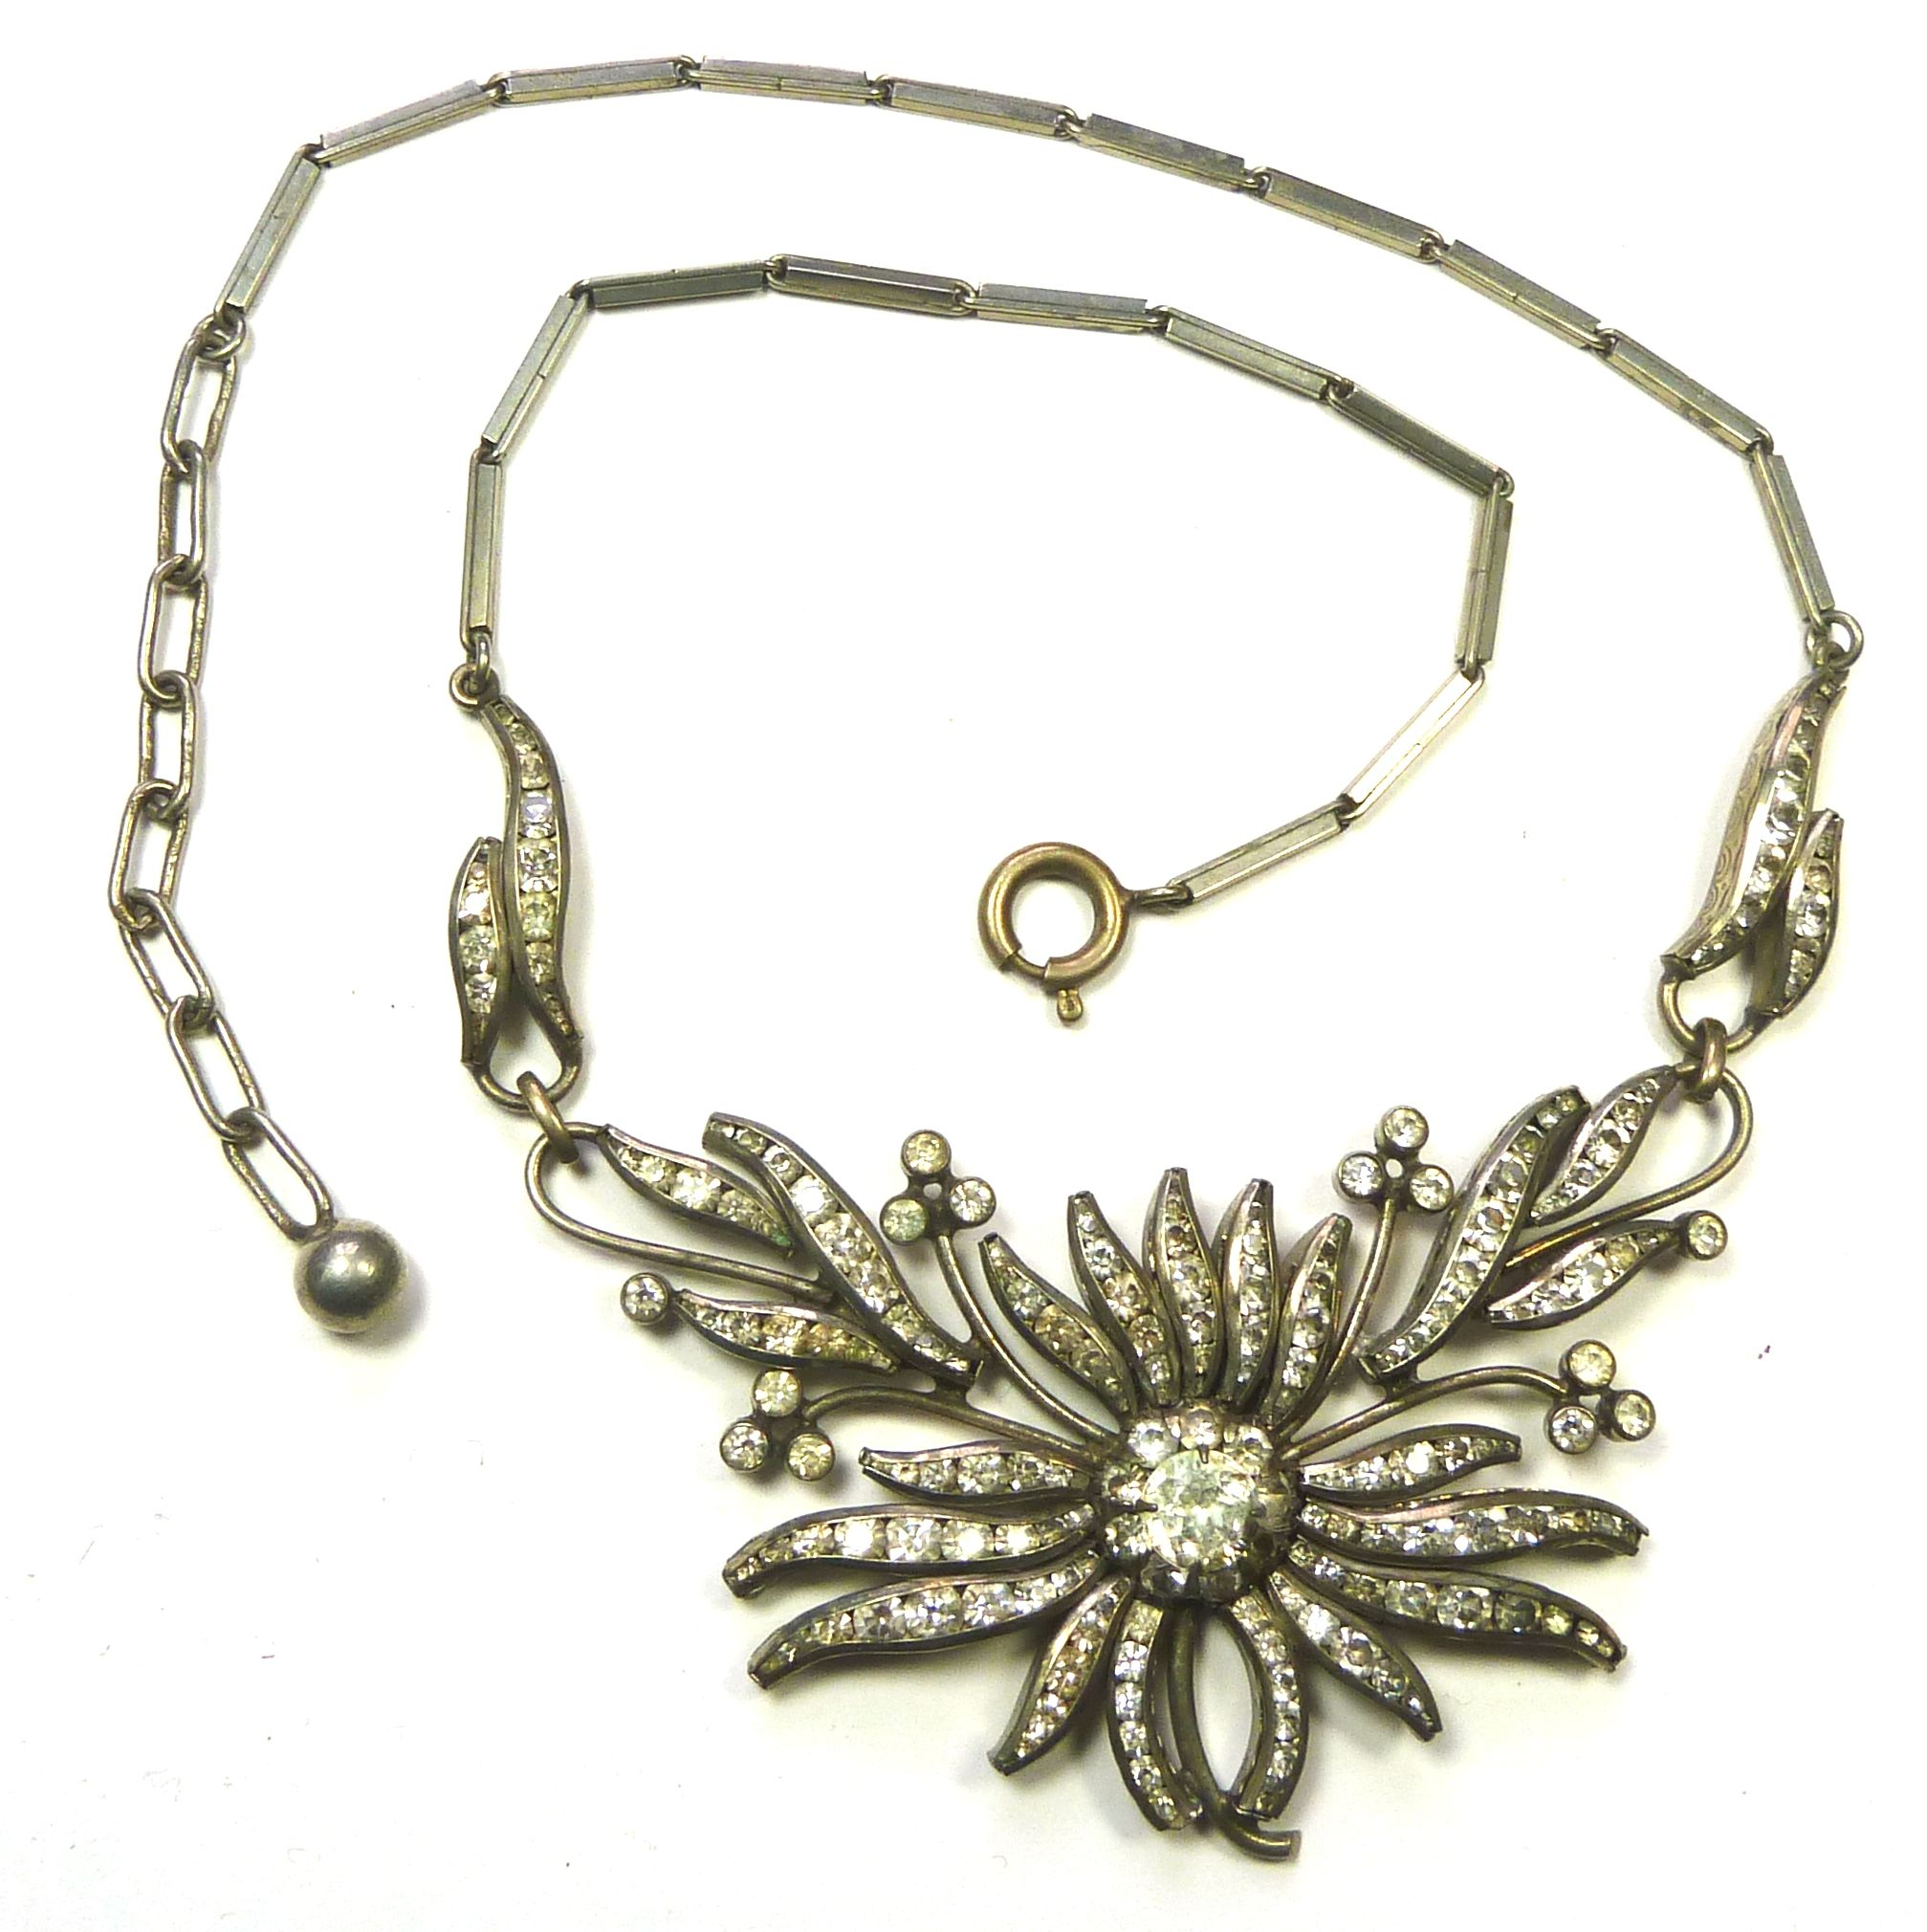 Art Deco, channel set, diamante necklace. Unusual in that it is floral - rather than the usual geometric designs.  Photograph by Gillian Horsup